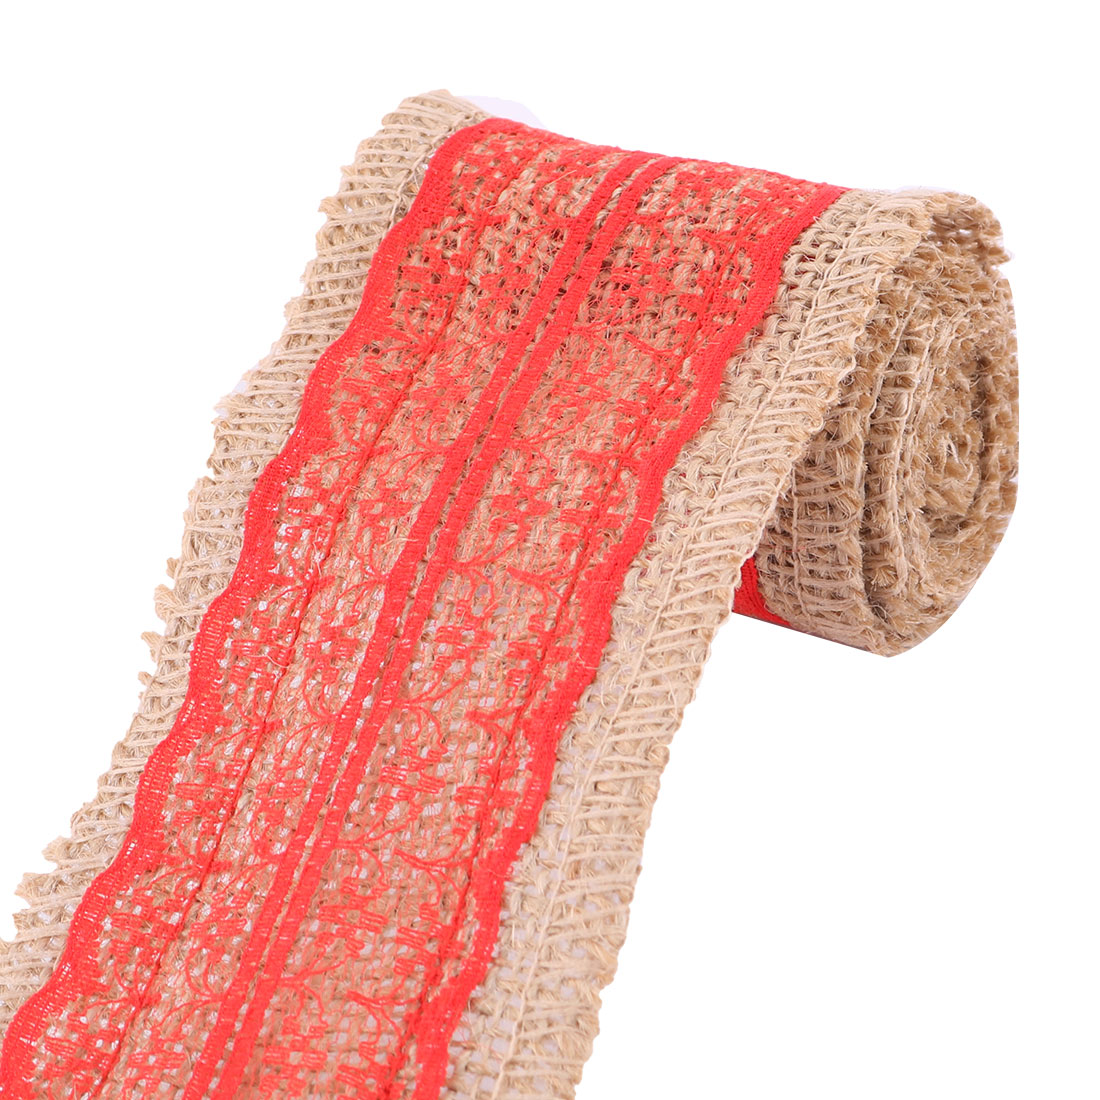 Home Party Burlap DIY Craft Sewing Belt Rope Ribbon Roll Ornament Red 1.1 Yards